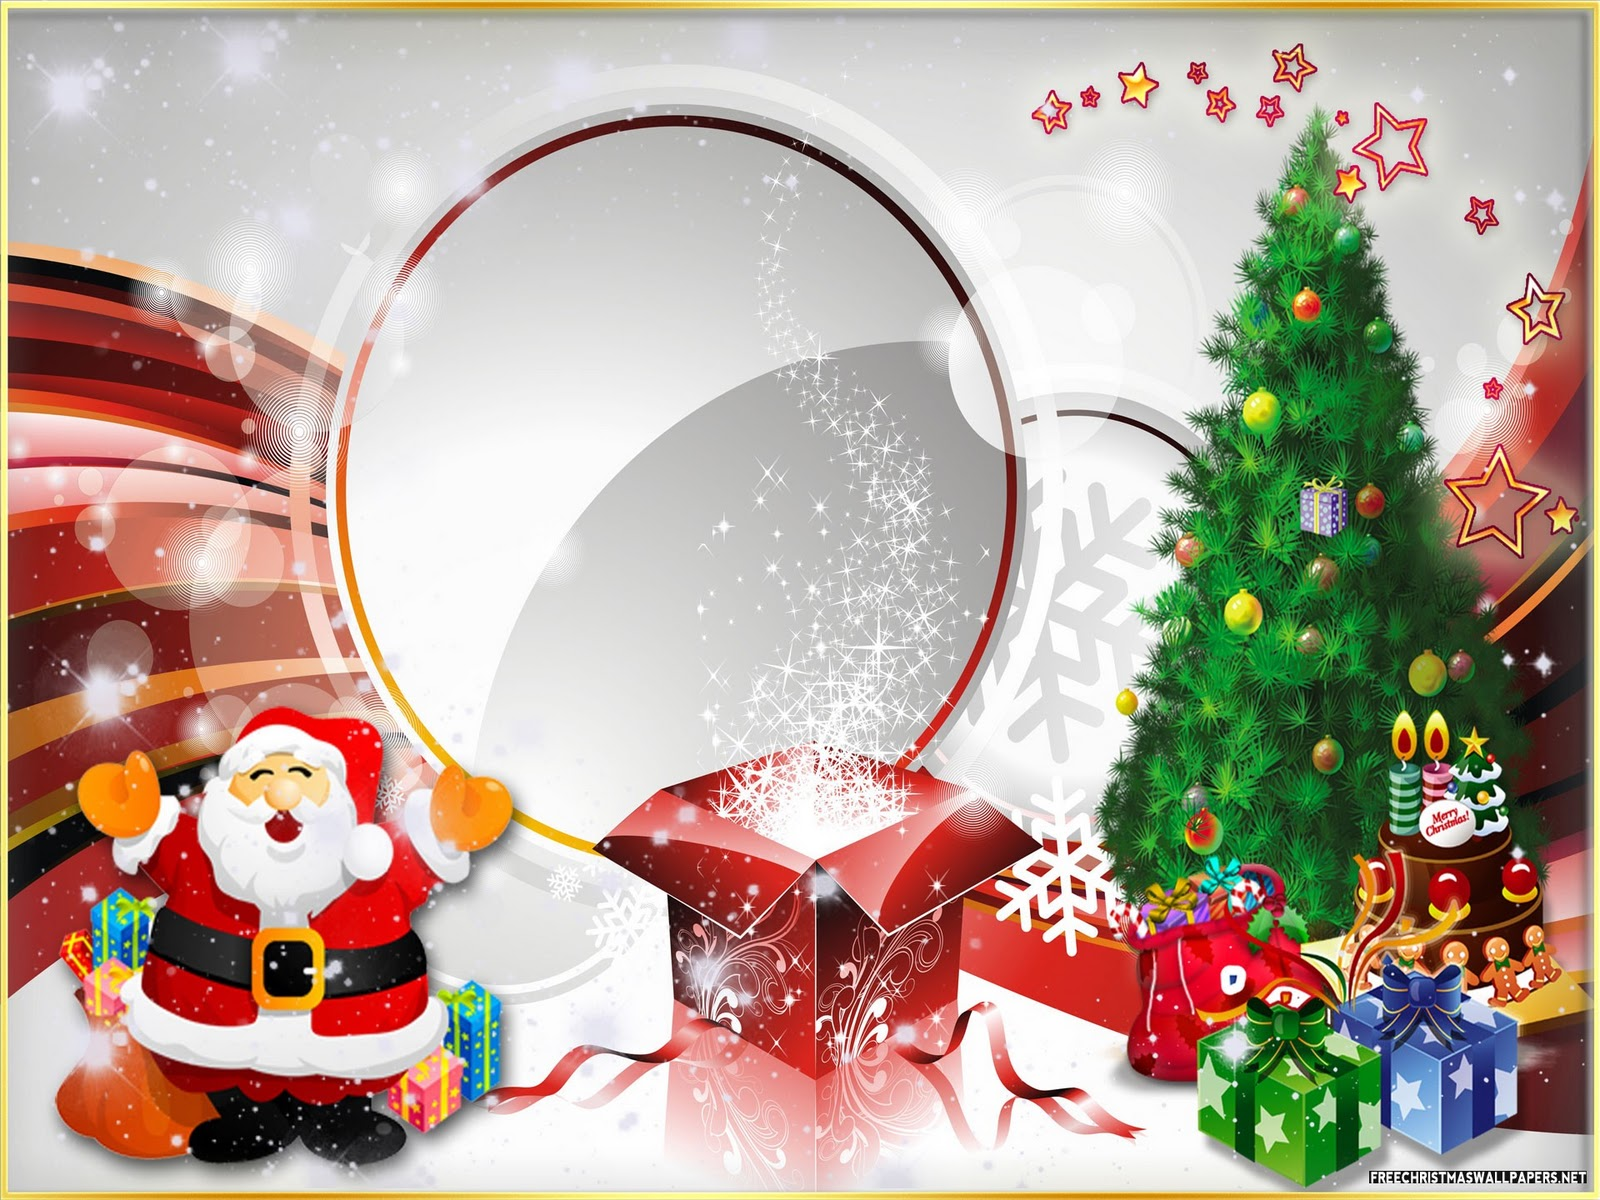 Merry Christmas Wallpapers Merry Christmas Backgrounds  - happy  merry christmas wallpapers